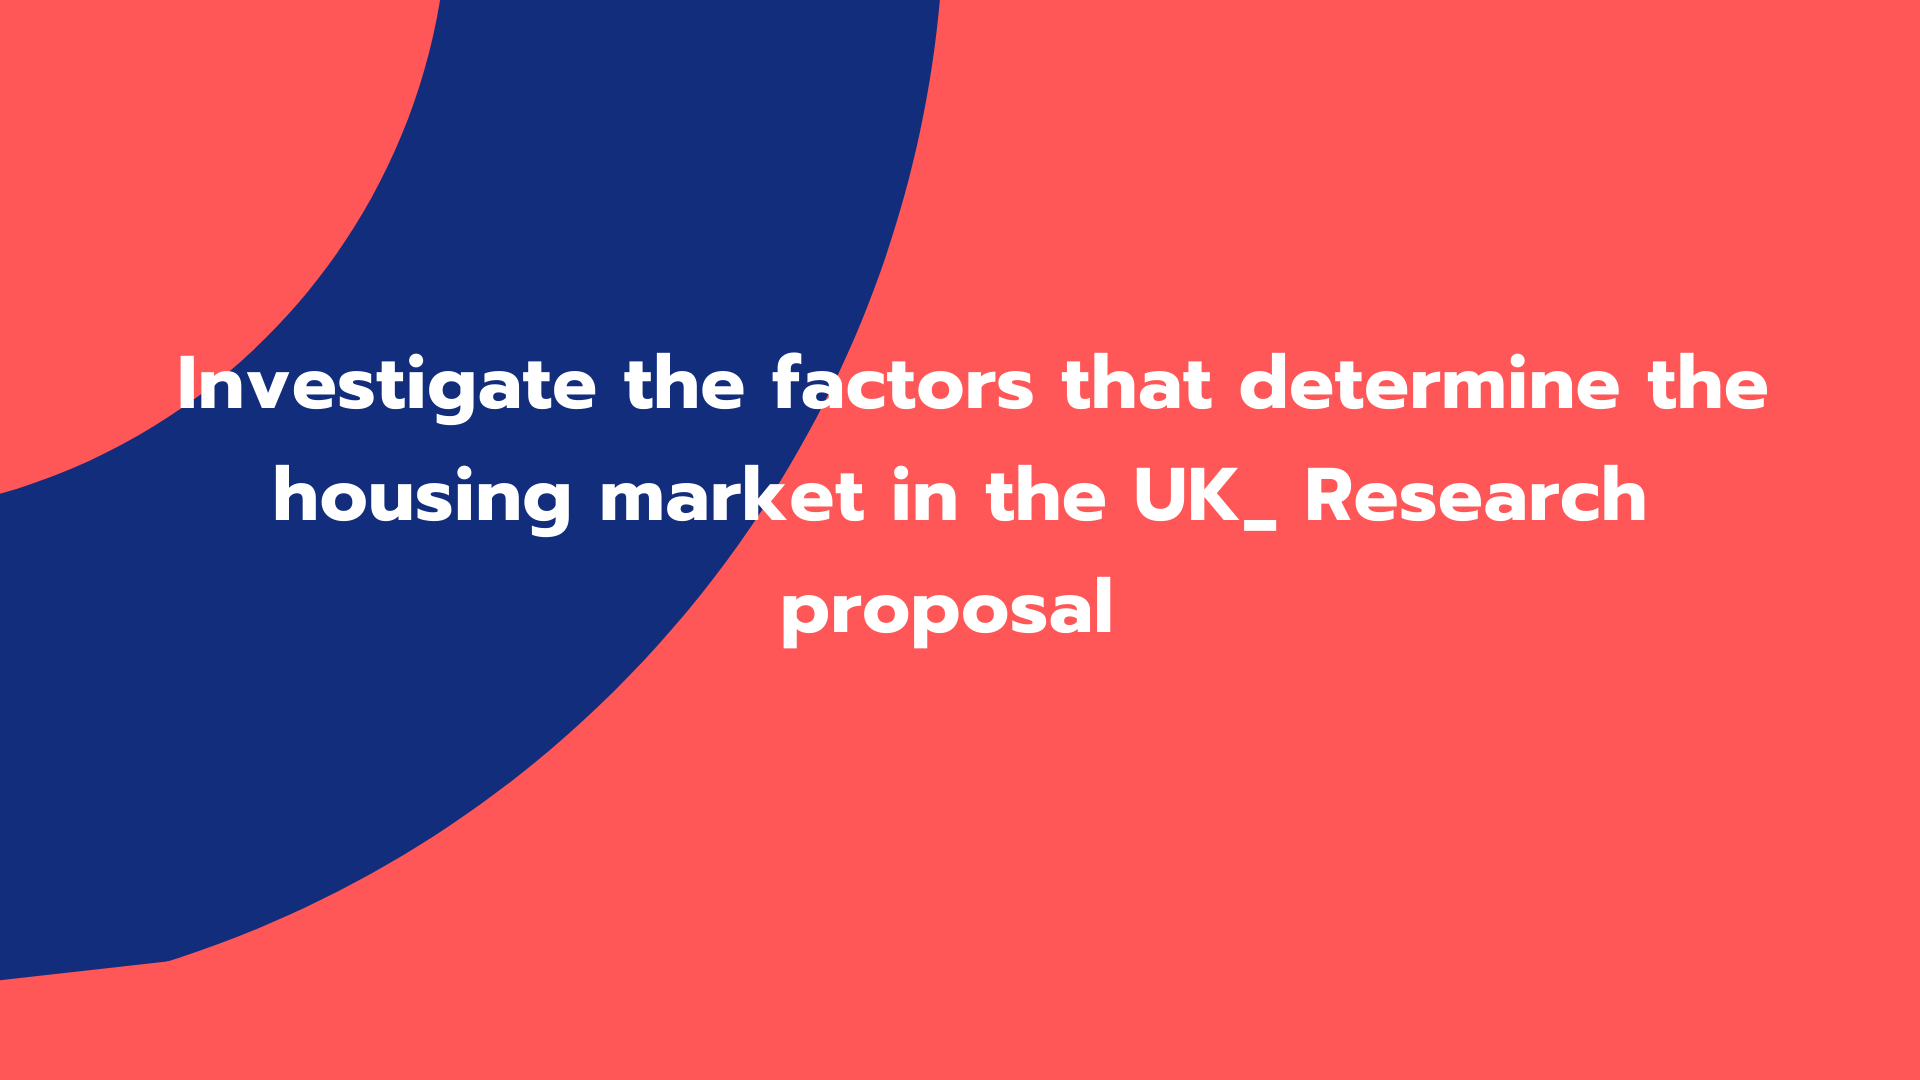 Investigate the factors that determine the housing market in the UK_ Research proposal